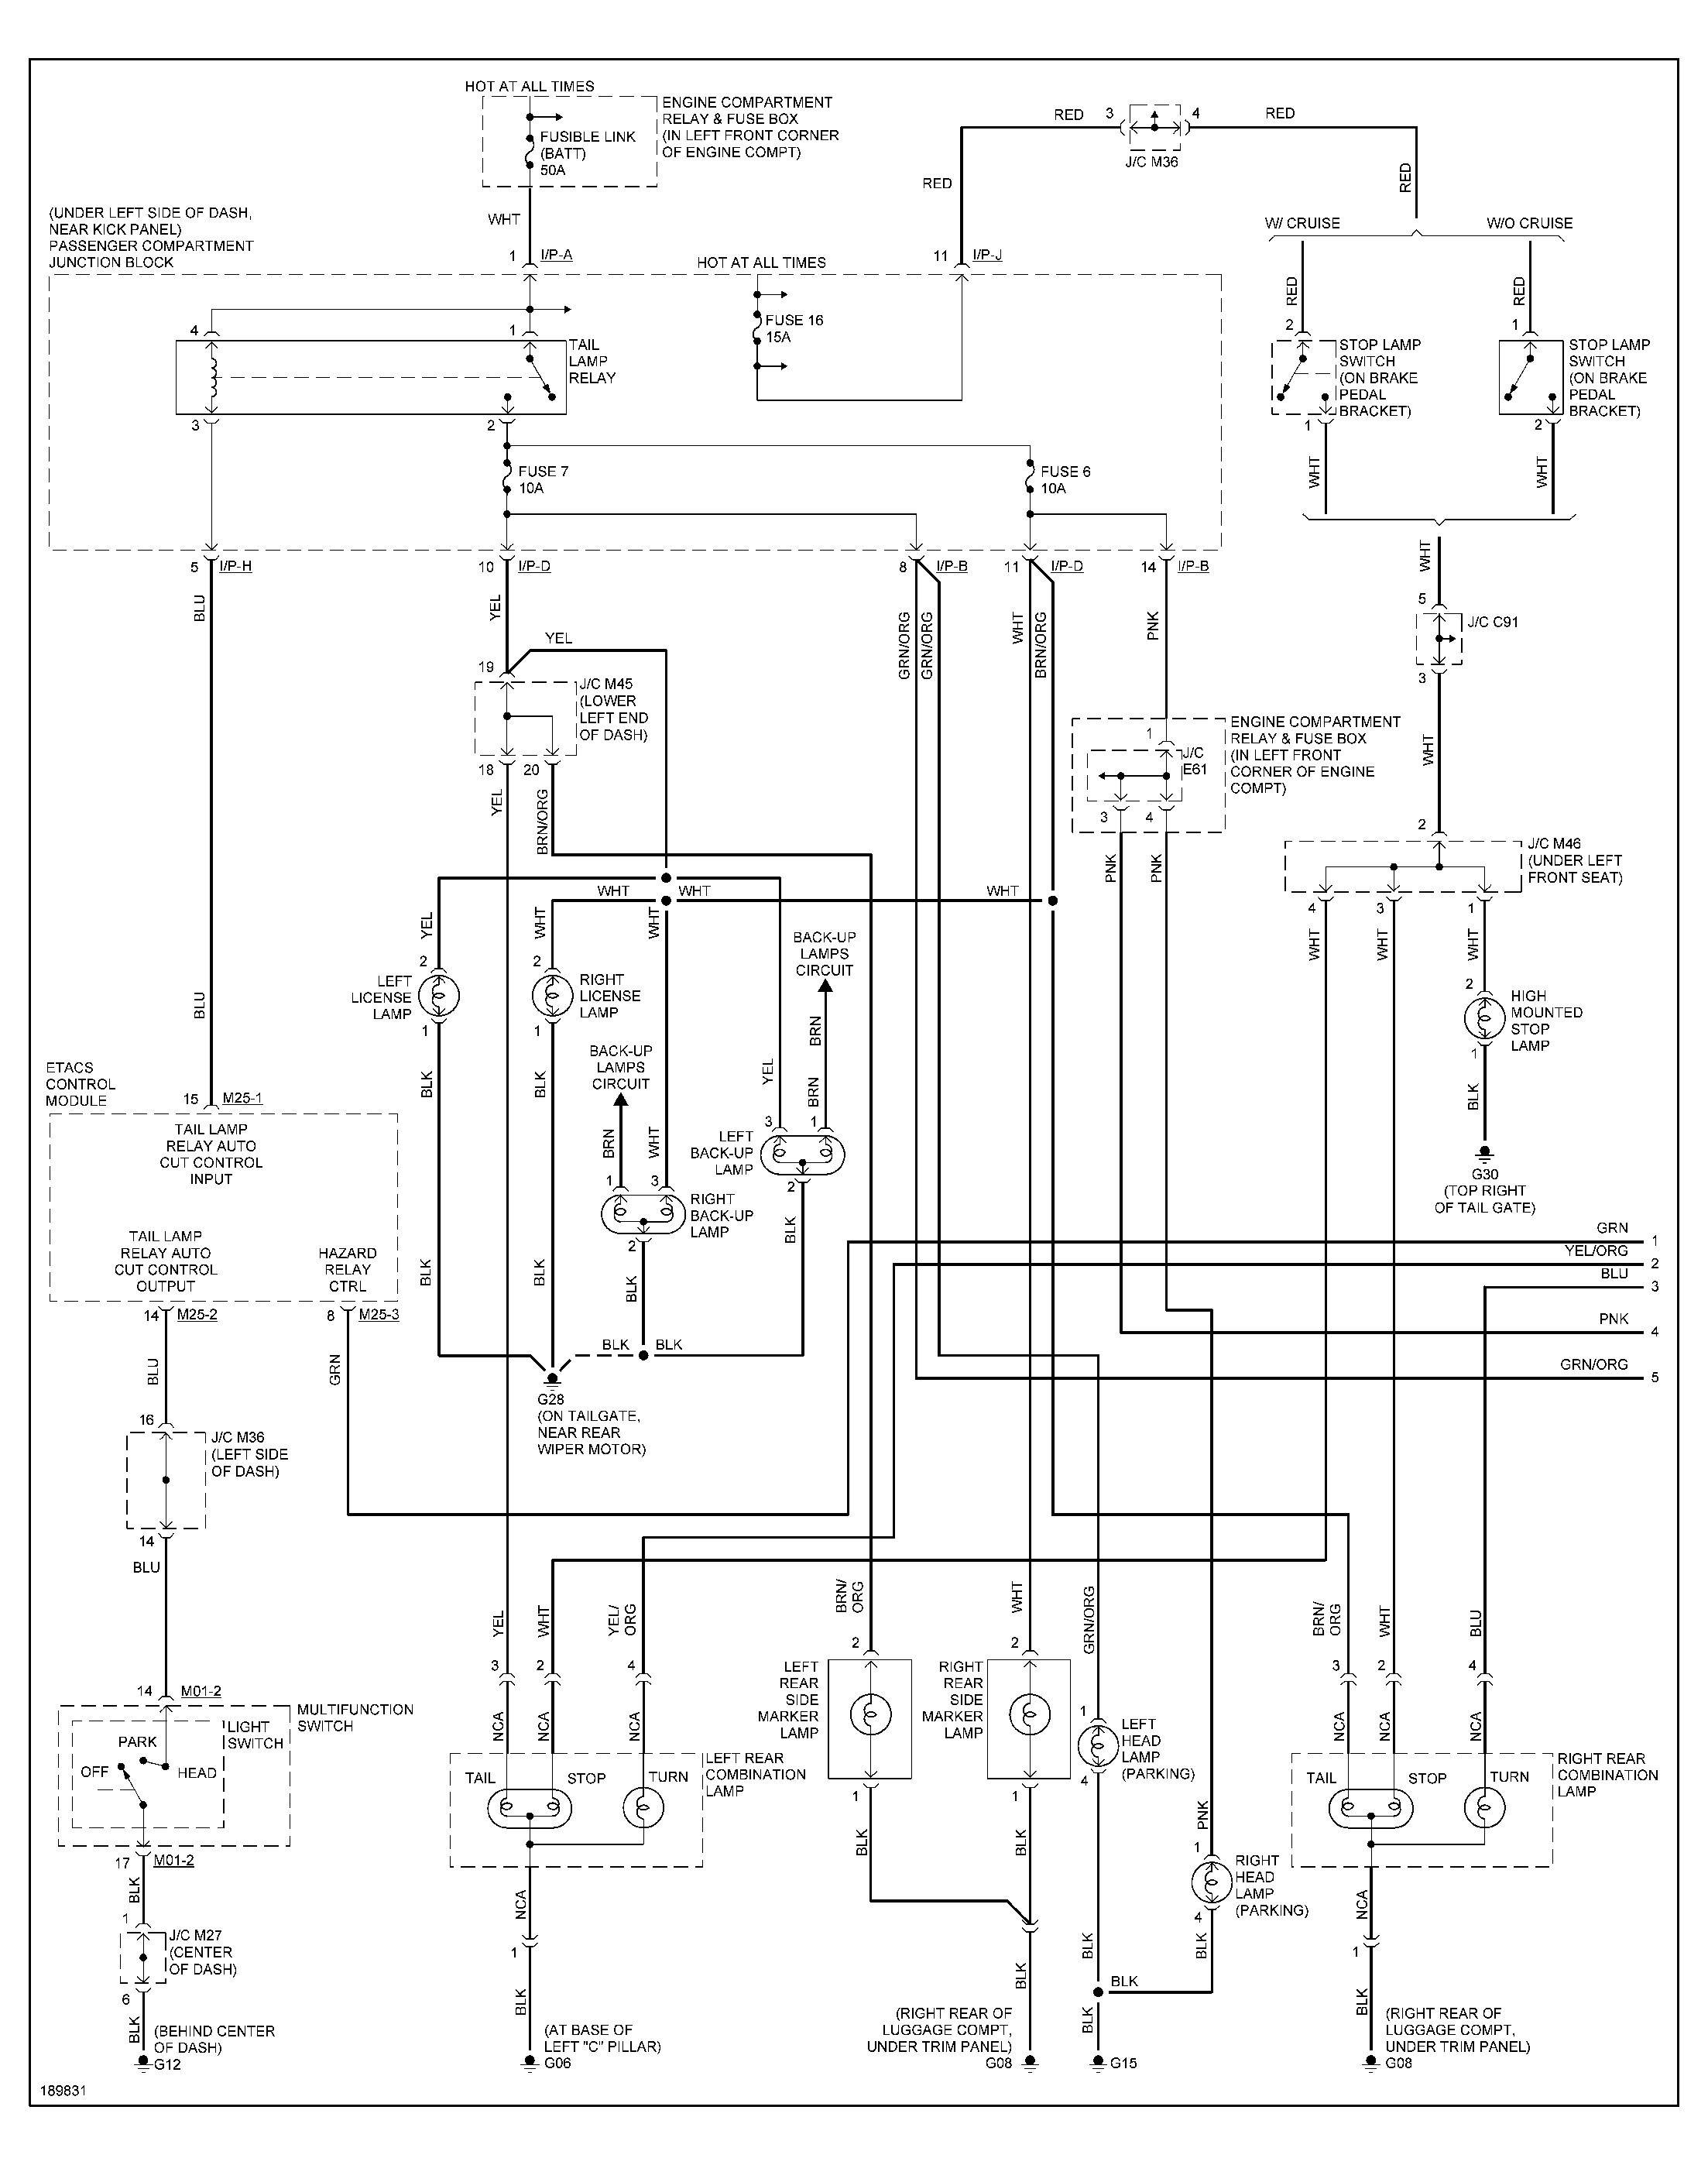 2001 Hyundai Sonata Fuse Box Diagram